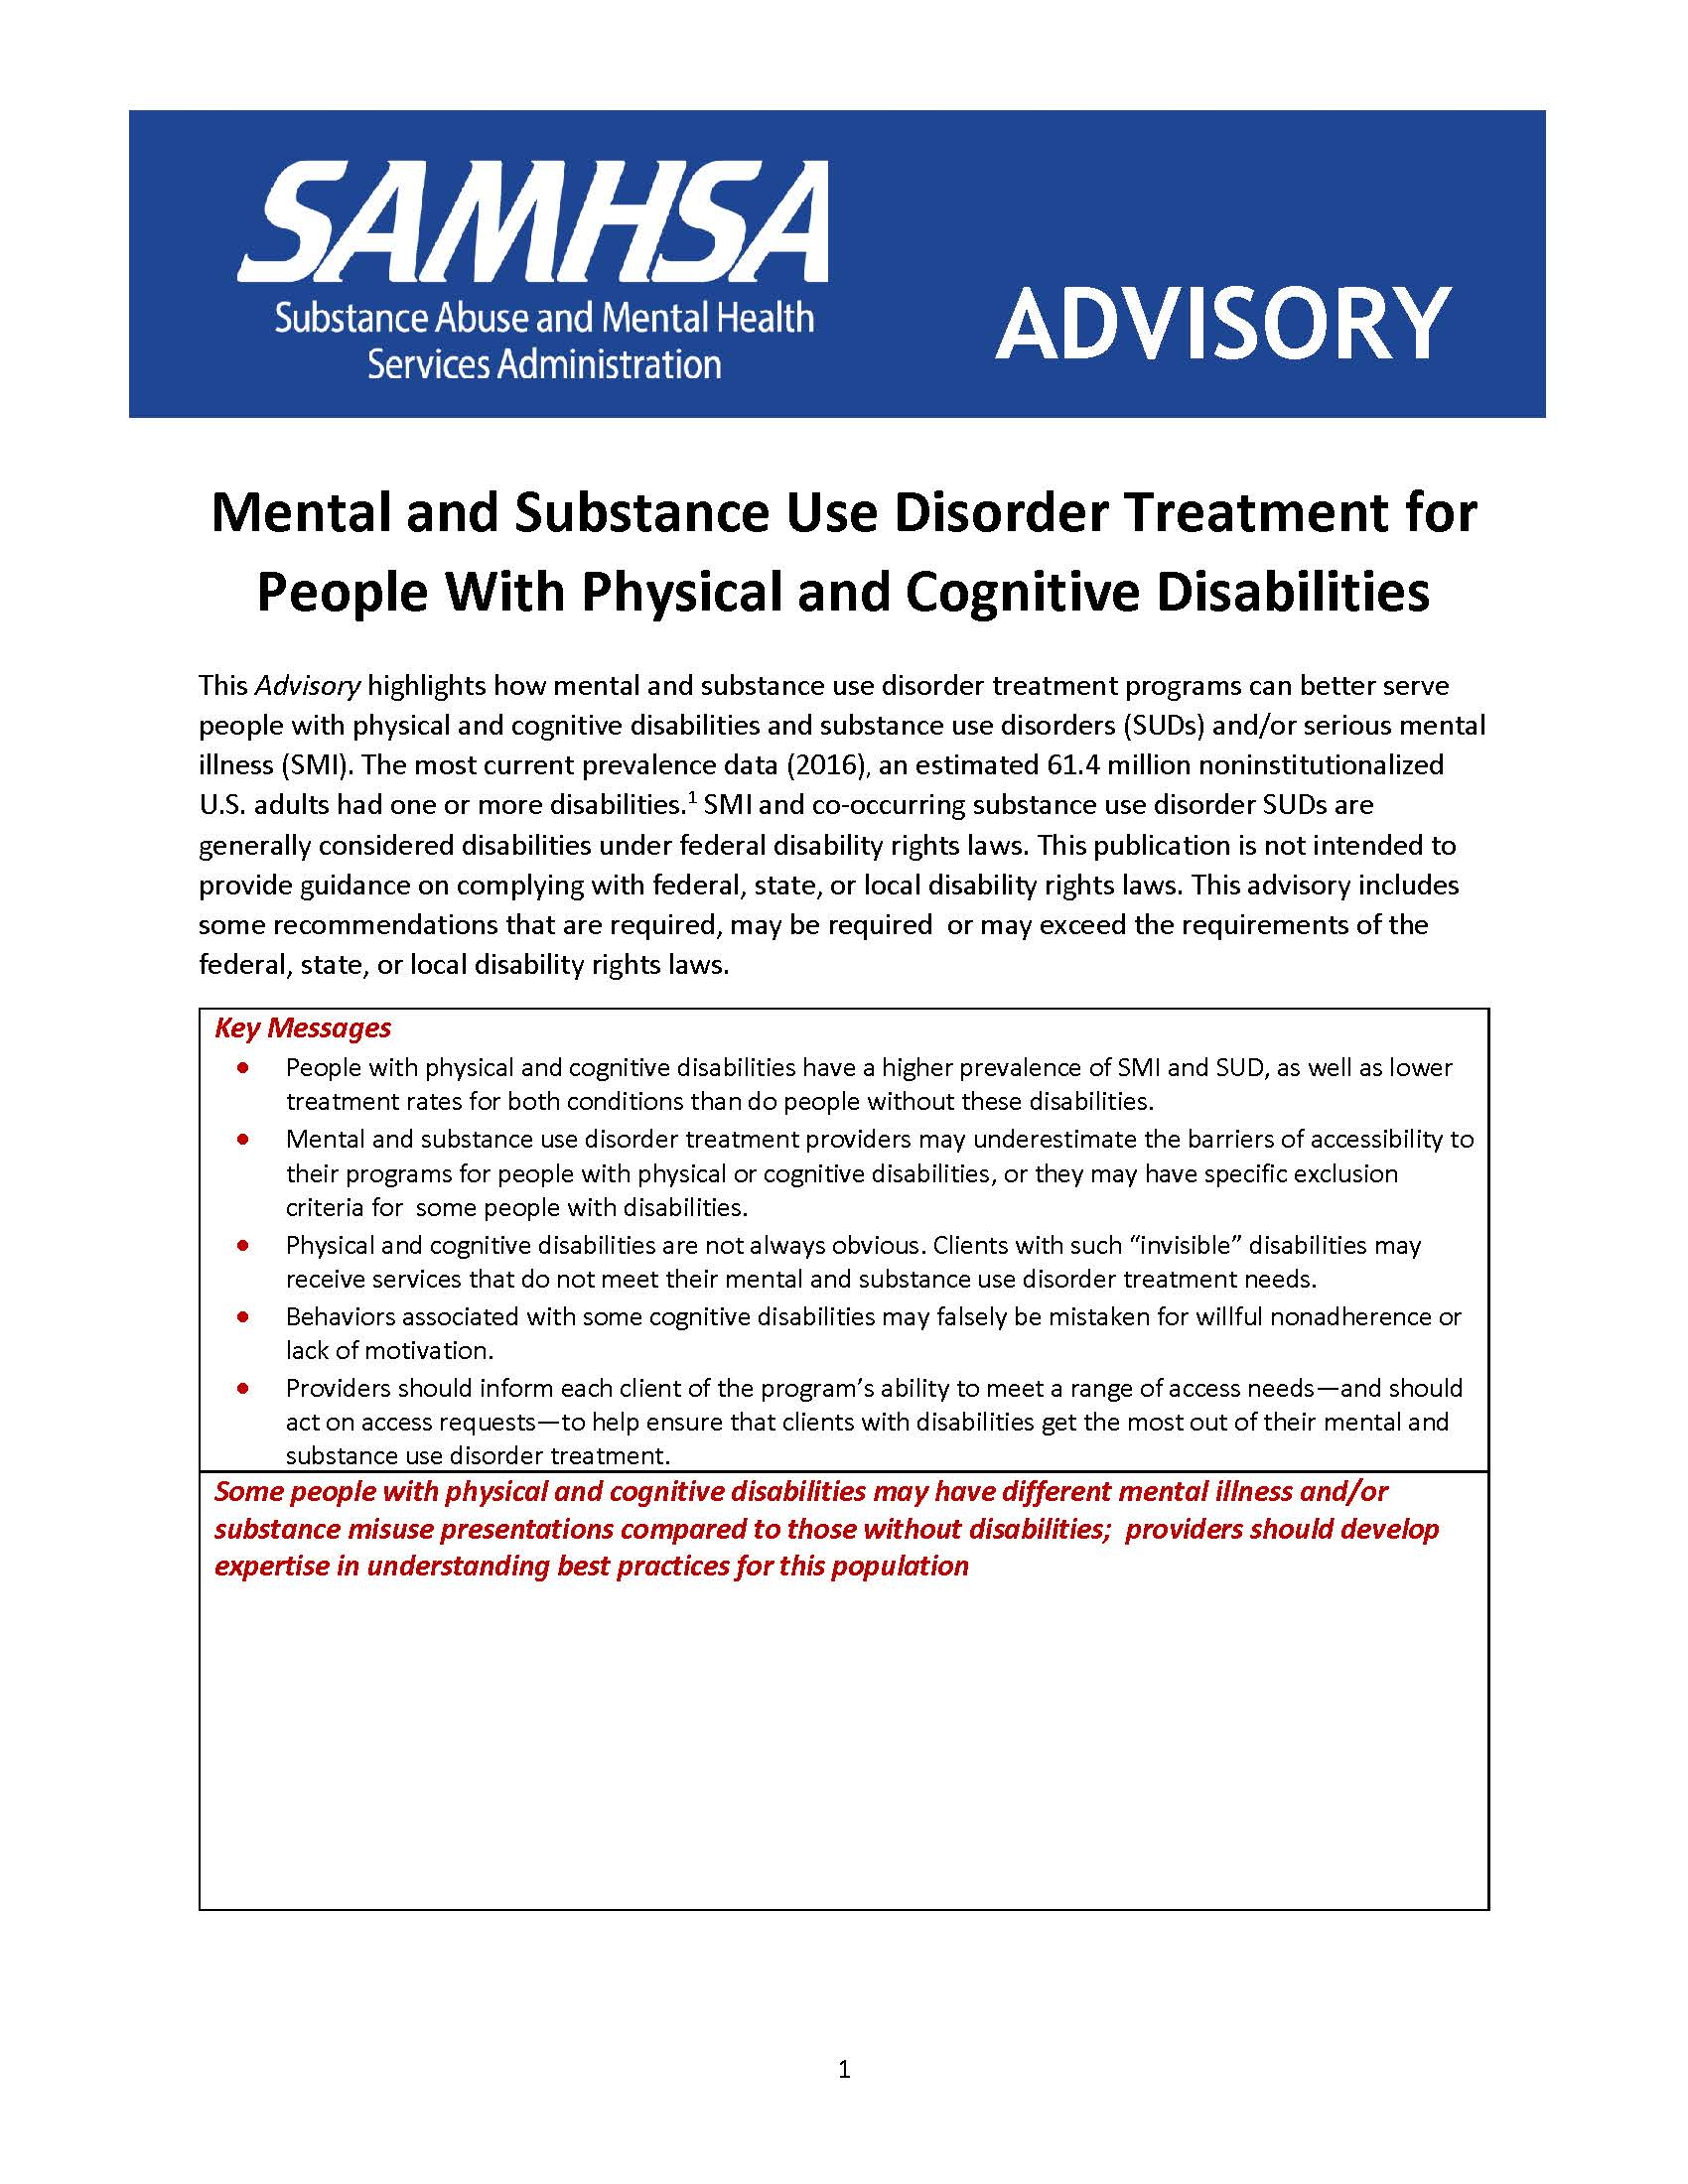 Mental and Substance Use Disorder Treatment for People With Physical and Cognitive Disabilities - Cover